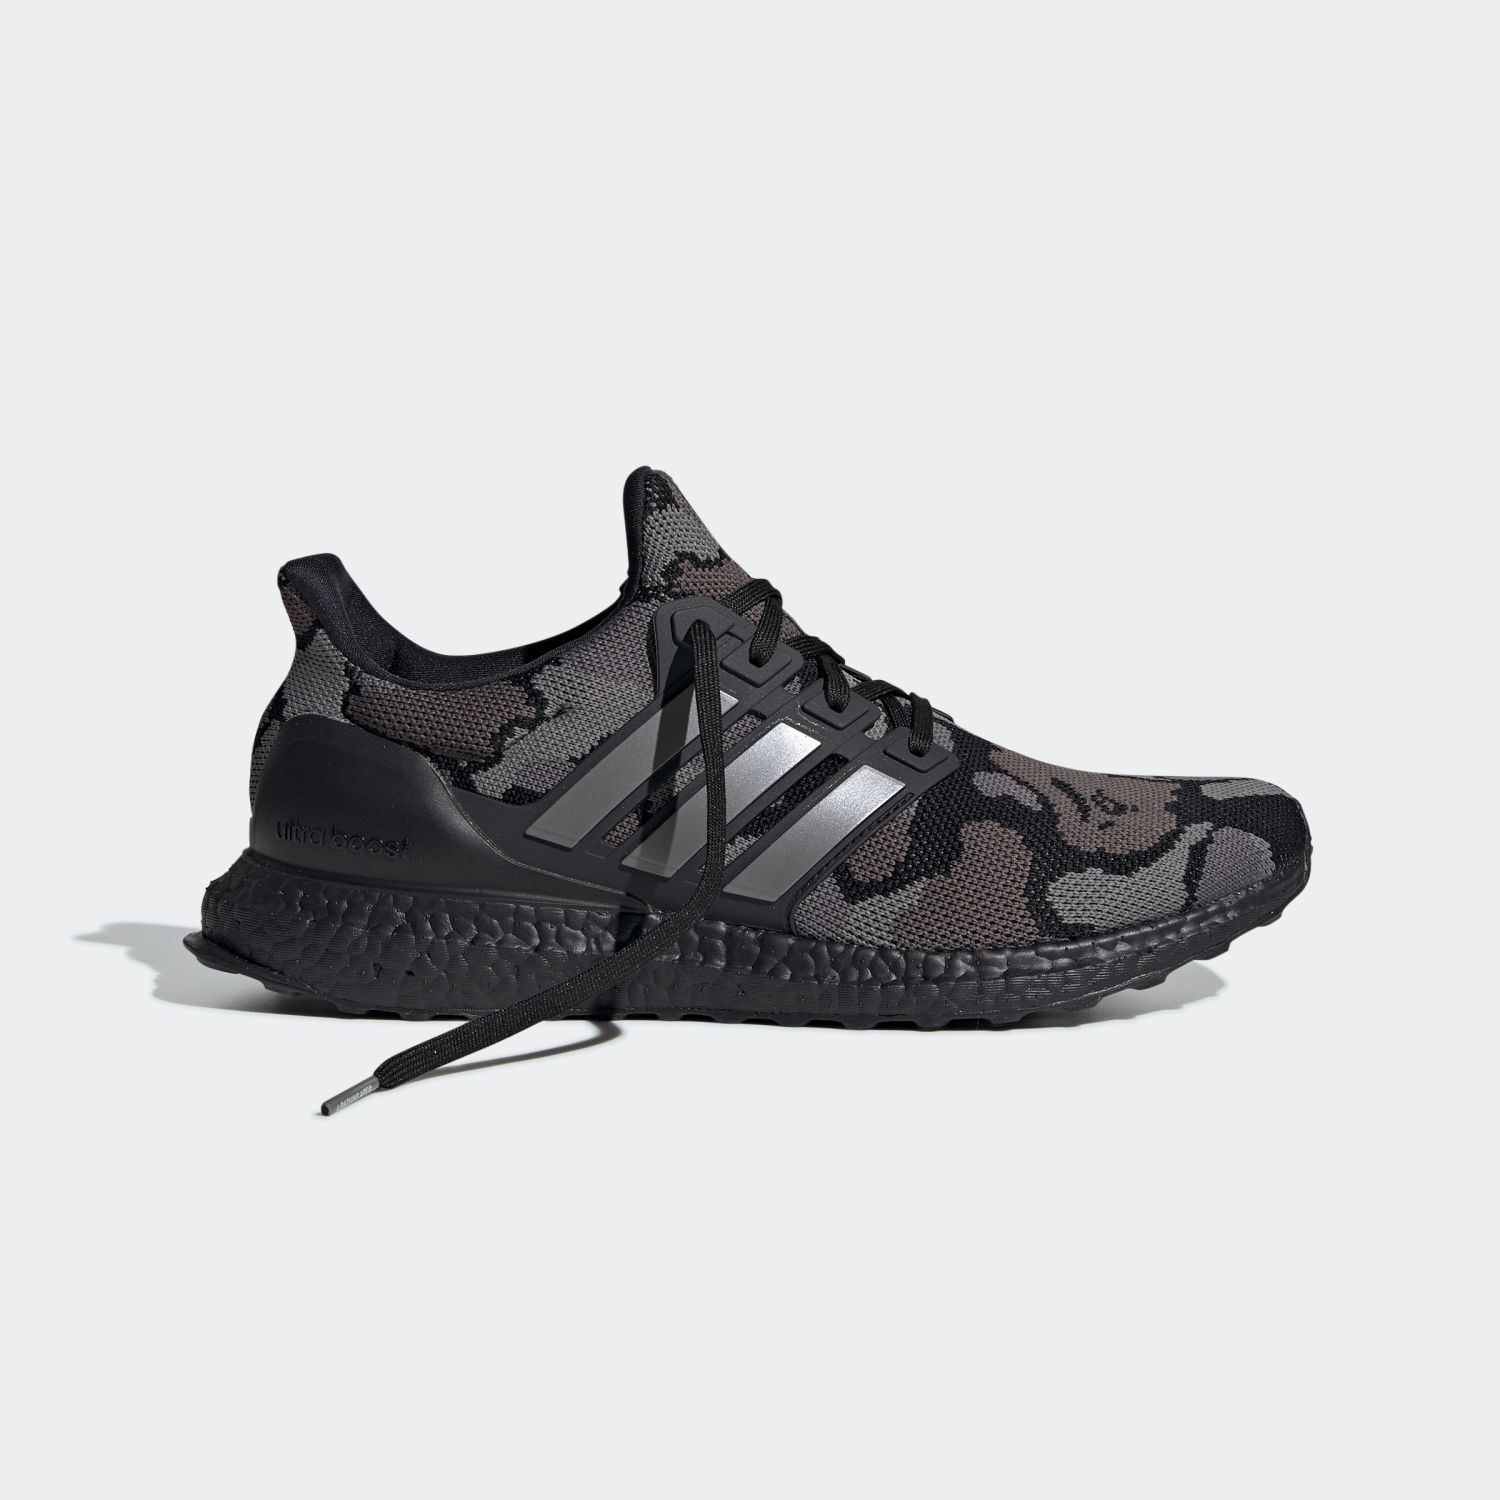 bape-a-bathing-ape-adidas-ultra-boost-black-release-20190202